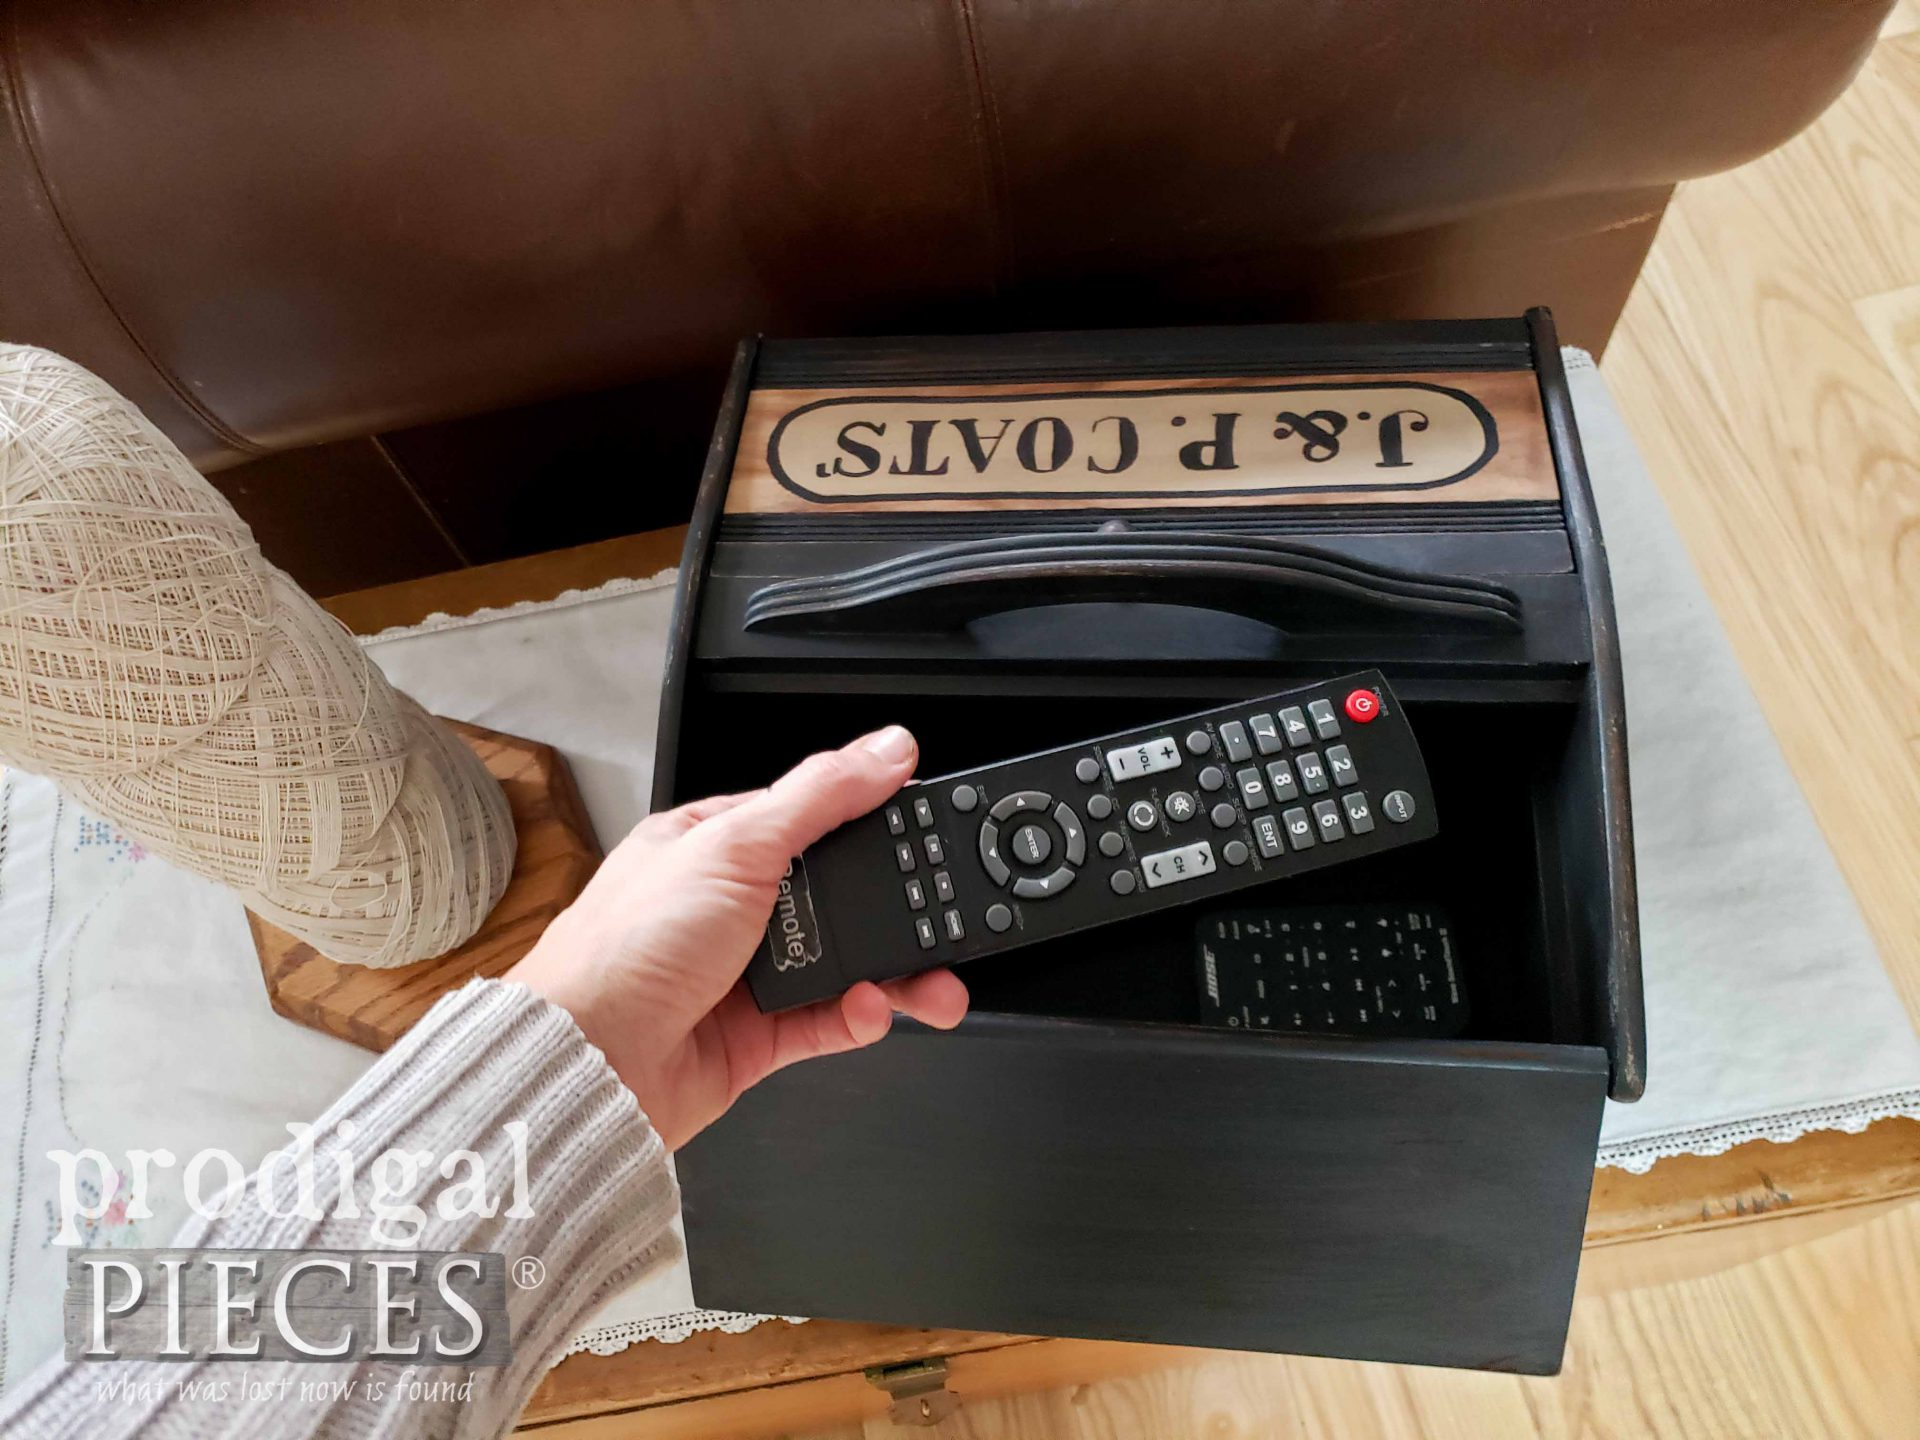 Farmhouse Remote Control Storage with Video Tutorial by Larissa of Prodigal Pieces | prodigalpieces.com #prodigalpieces #diy #home #homedecor #farmhouse